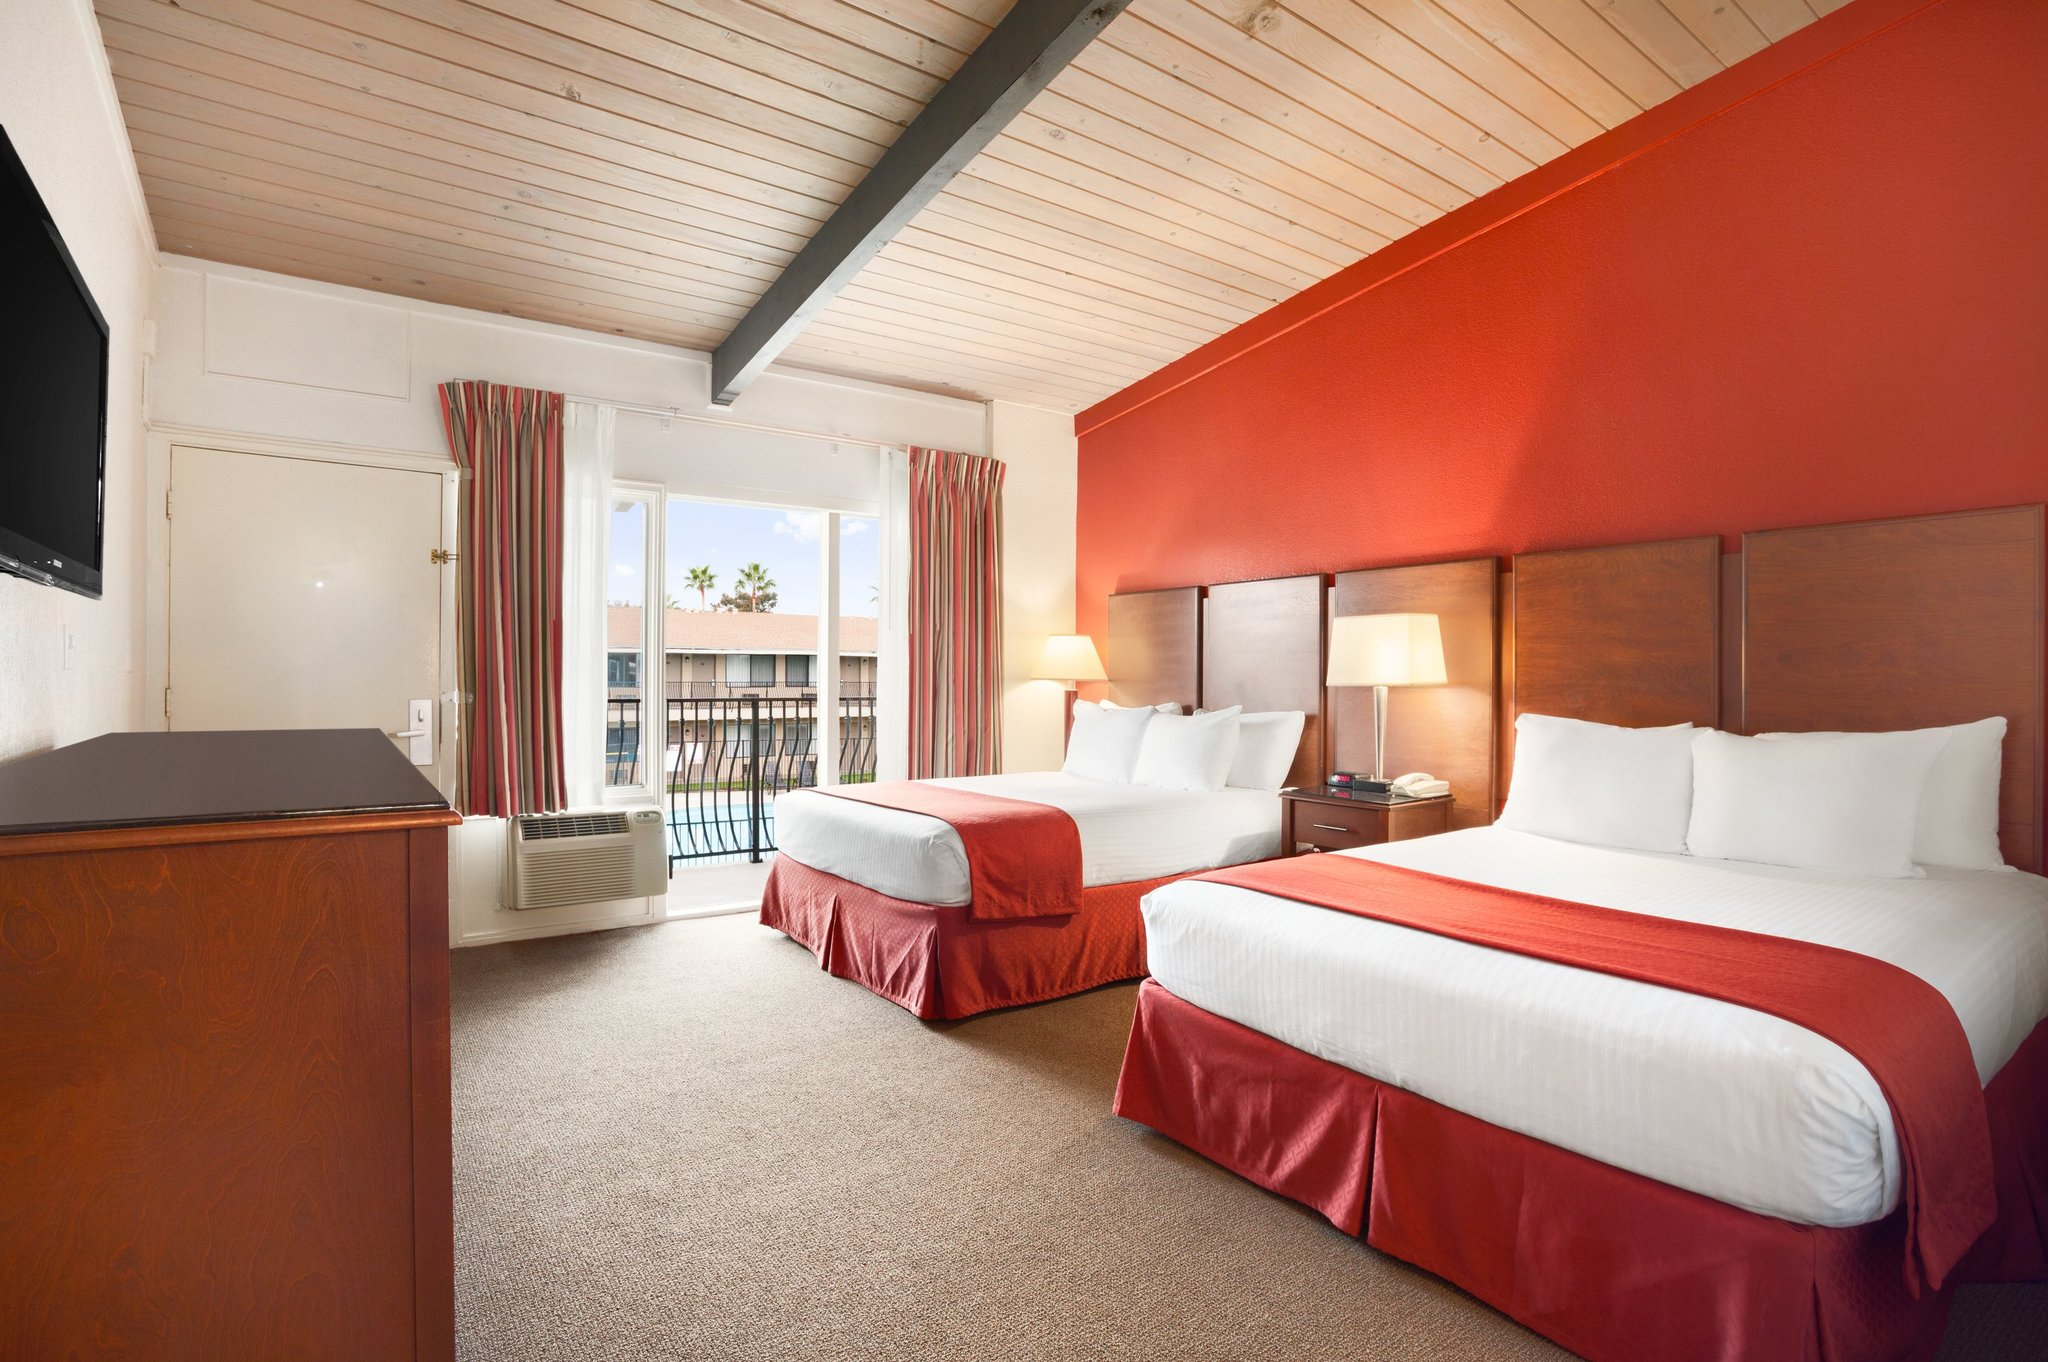 Courtyard Two Queen - Enjoy views of our tranquil courtyard from this charming guest room! Perfect for a relaxing group getaway, this room boasts two soft queen beds, a mini-fridge, a microwave, and a flat-screen TV. Our Courtyard Two Queen offers sprawling views of our courtyard and pool. Our property is punctuated by well-manicured grounds and greenery like palm trees.Max 4 Guests 2 Queen Beds